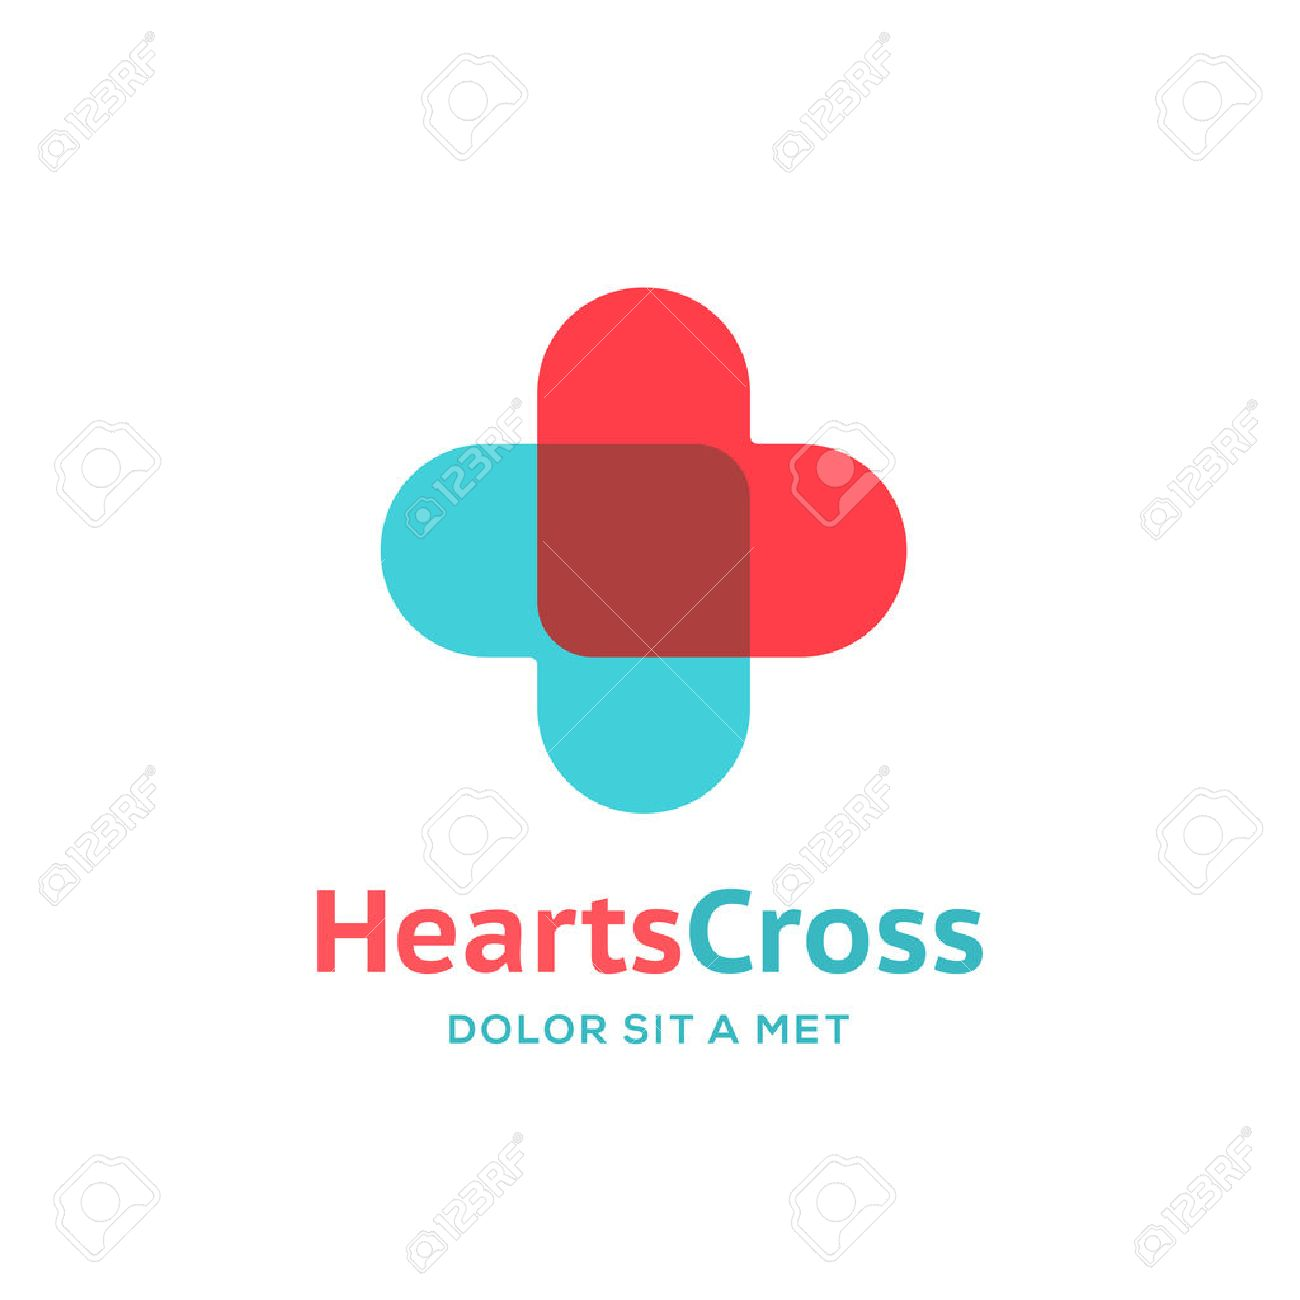 Cross plus heart medical logo icon design template elements Stock Vector - 47219699